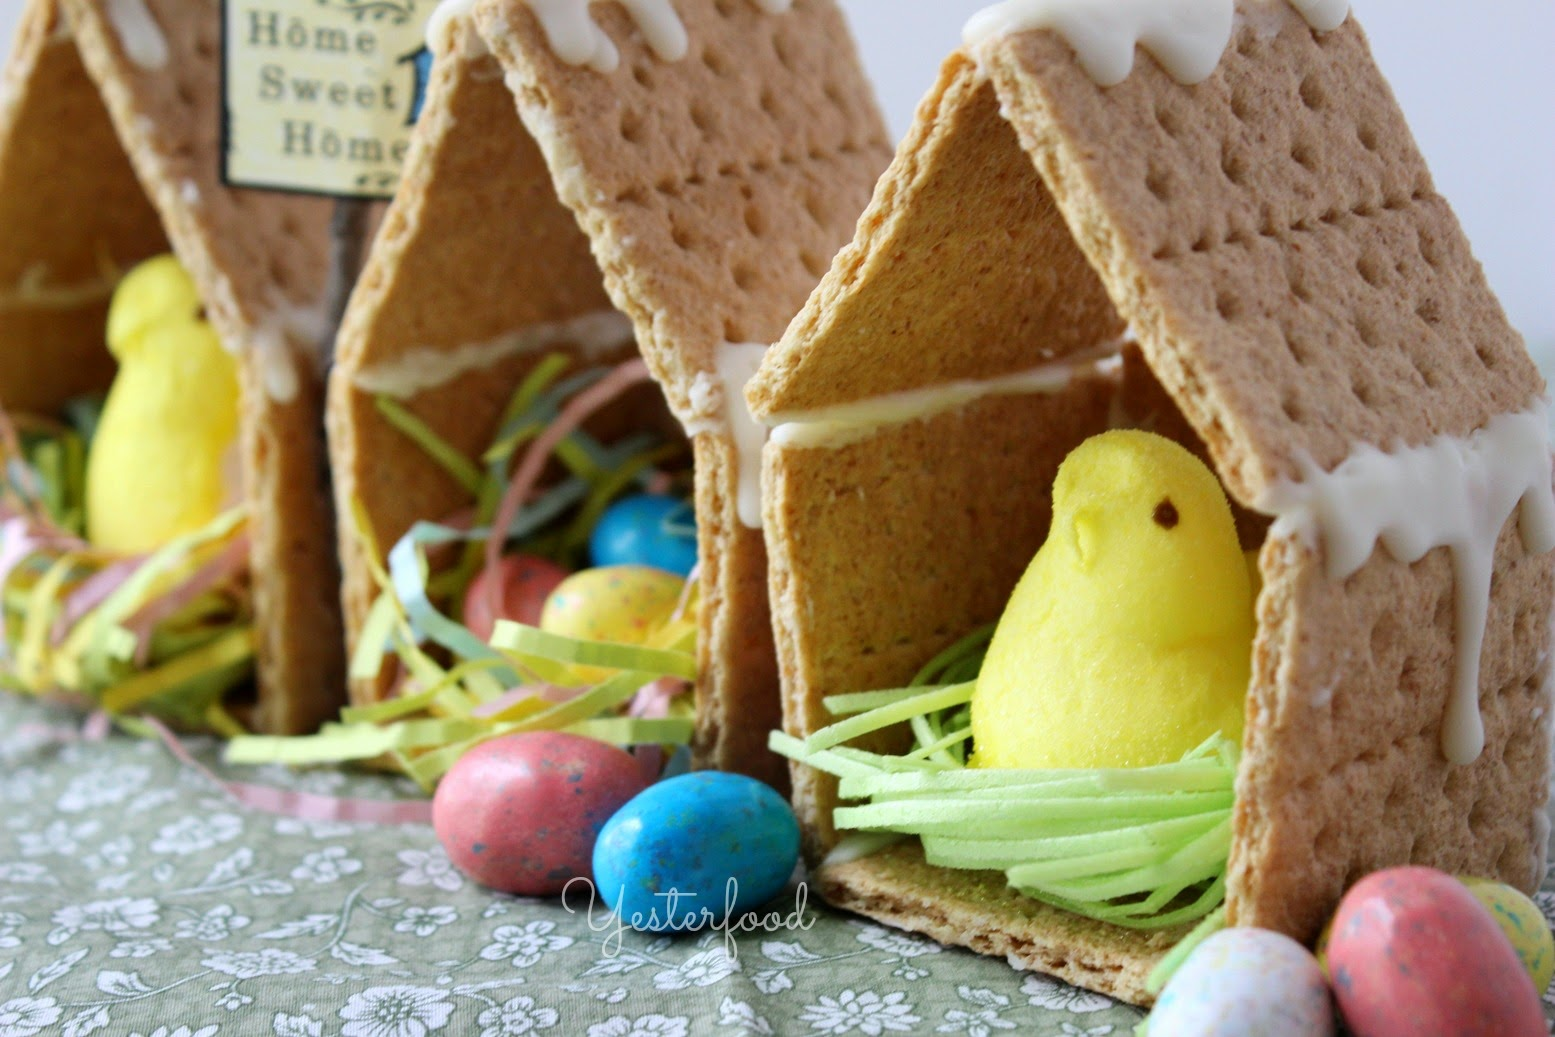 Diy Crunchy And Edible Peeps House Craft Truly Hand Picked